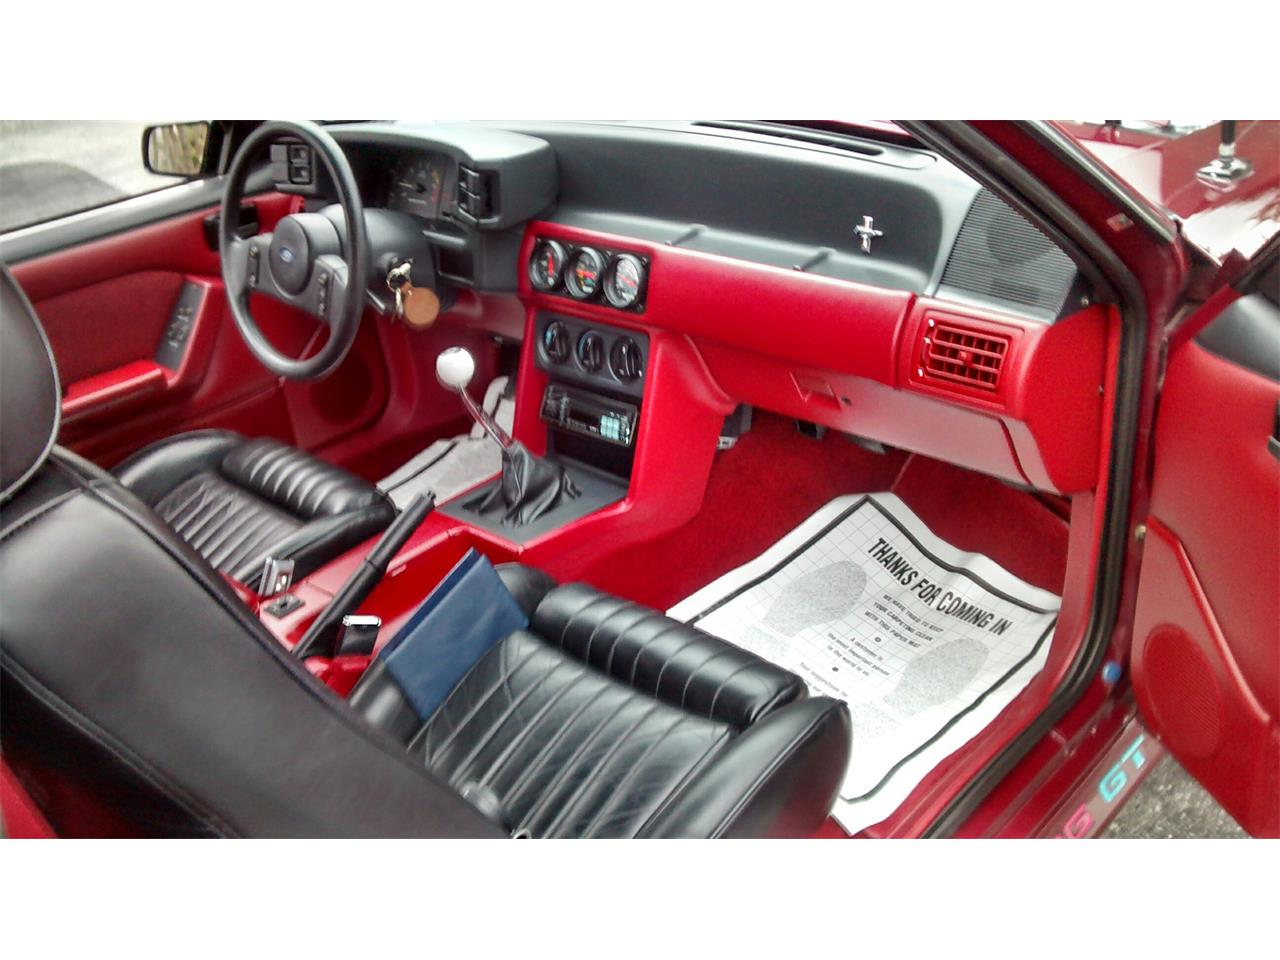 Large Picture of 1989 Mustang GT located in Bradford New Hampshire - $12,500.00 Offered by a Private Seller - Q101